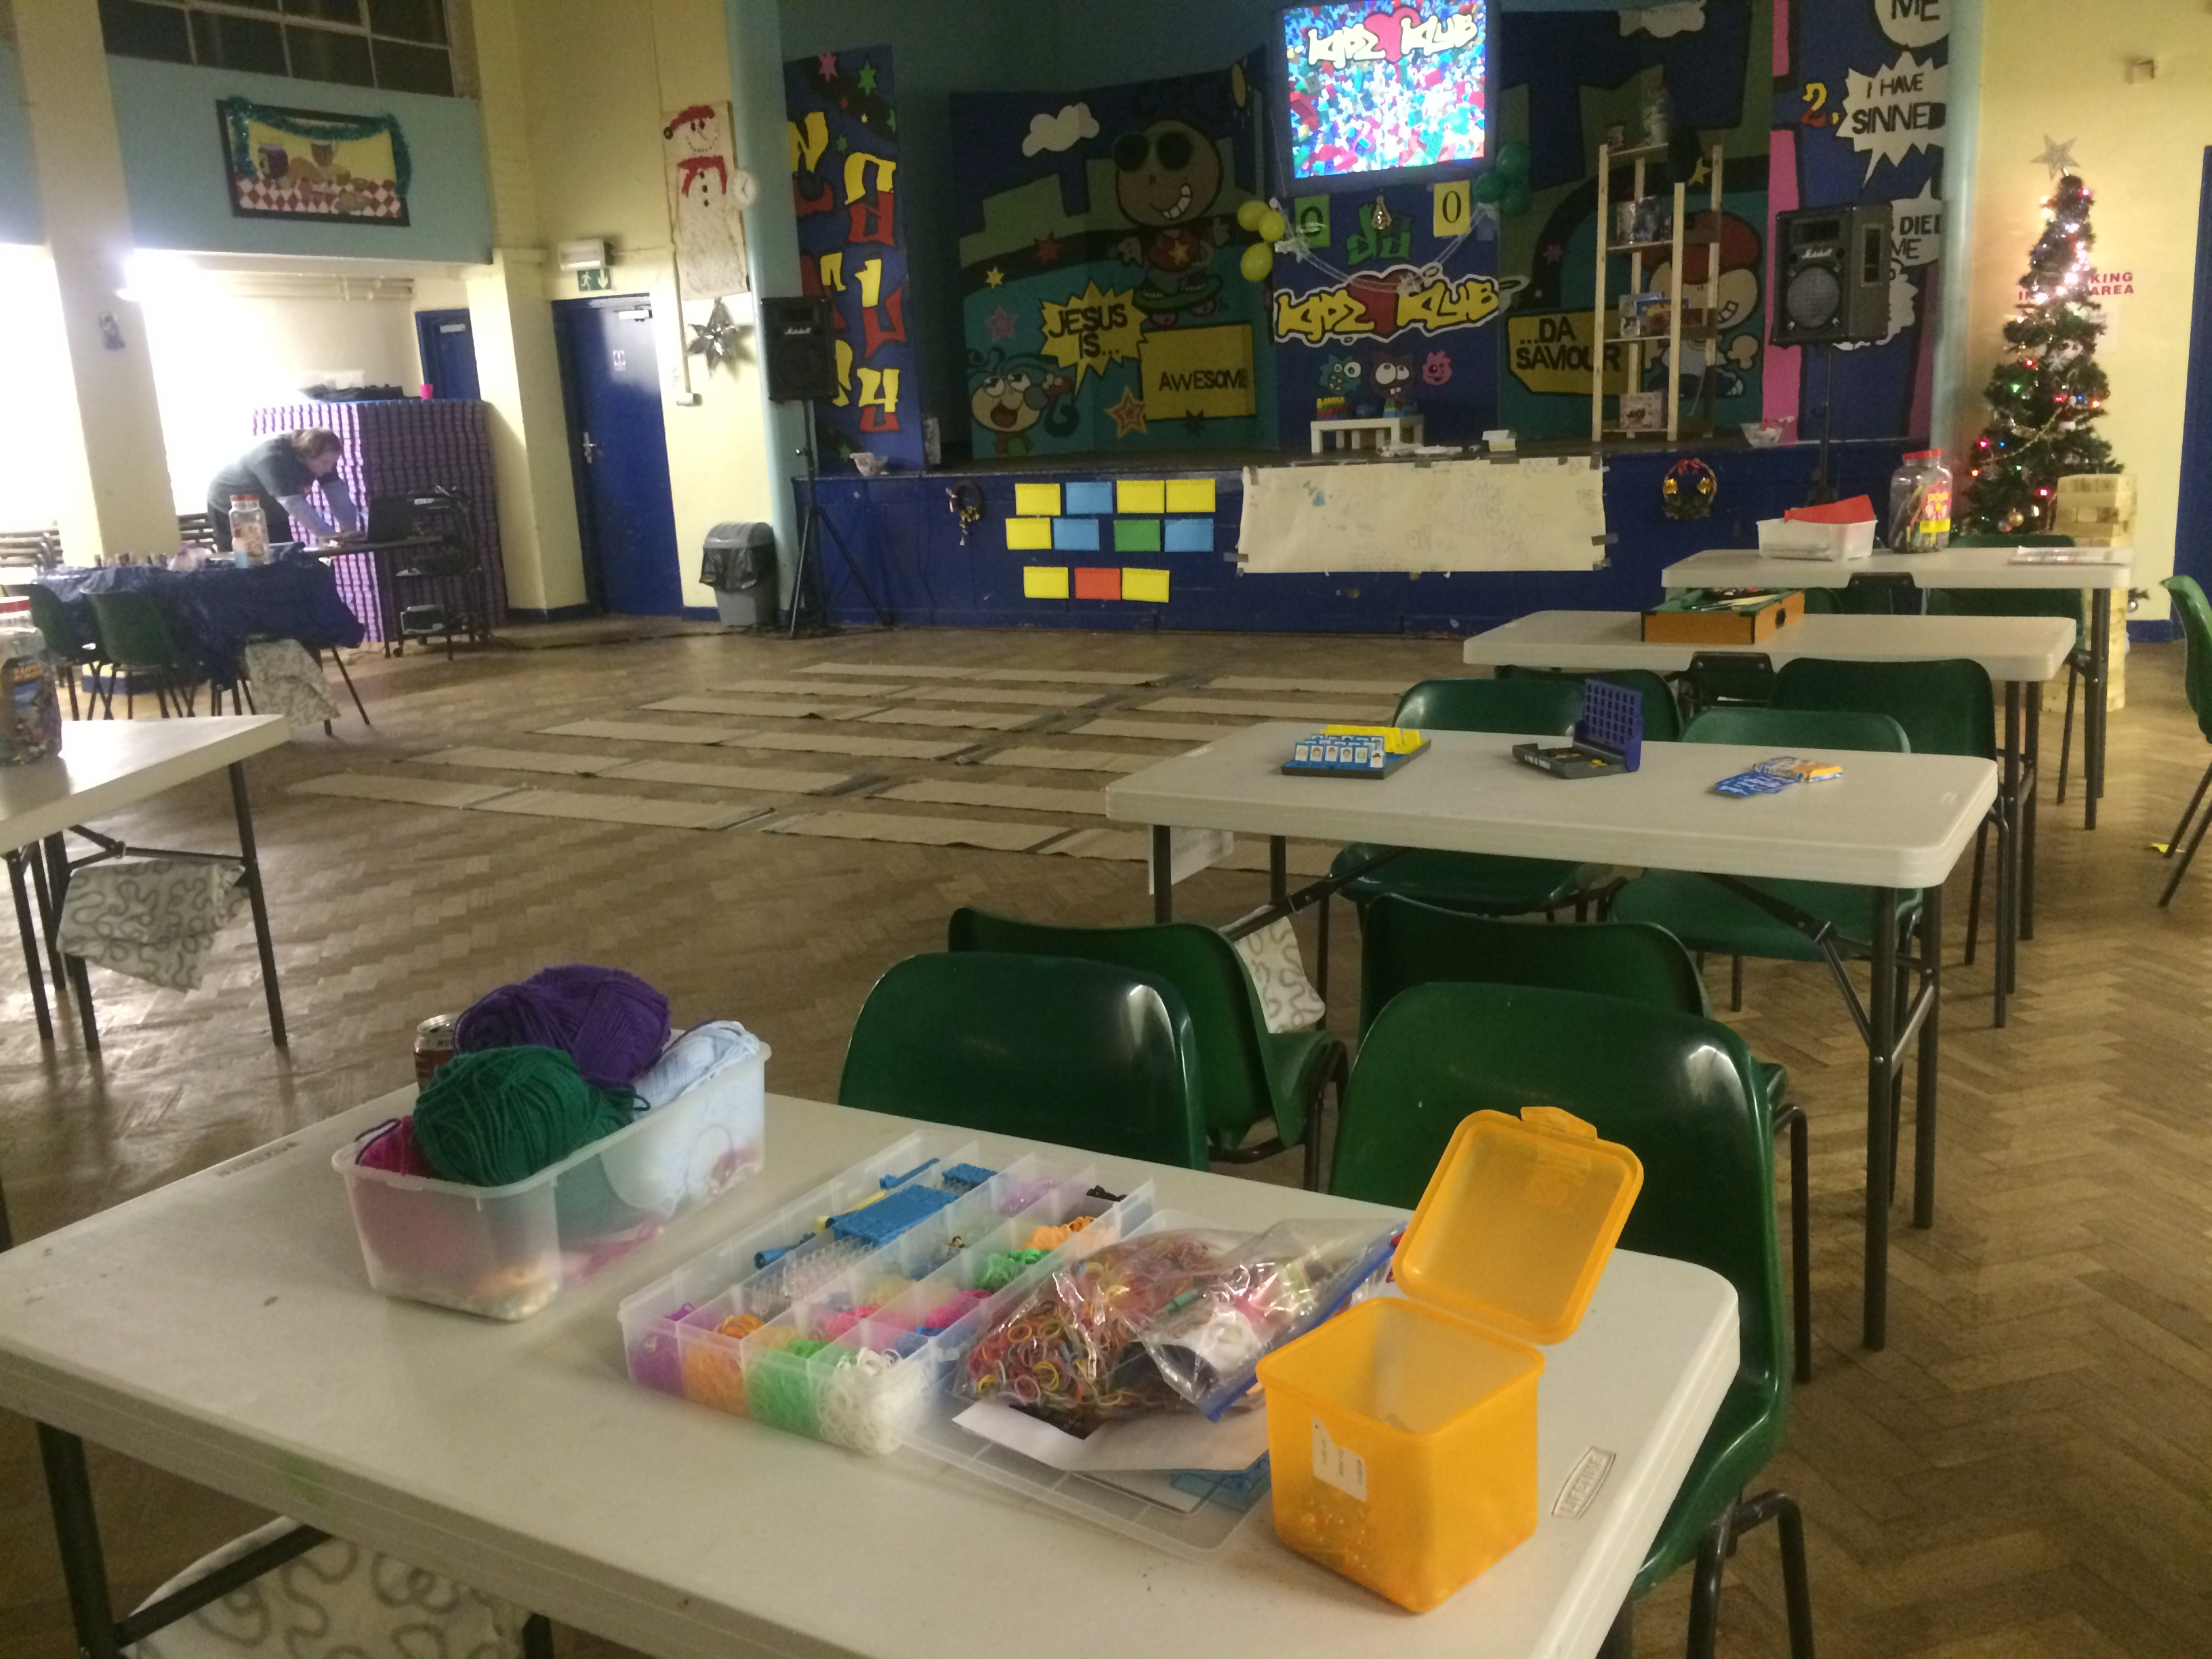 It's a Kidz Klub…no, it's a youth club…actually, it's…a peek into Kidz Klub Canley's youth club slot!